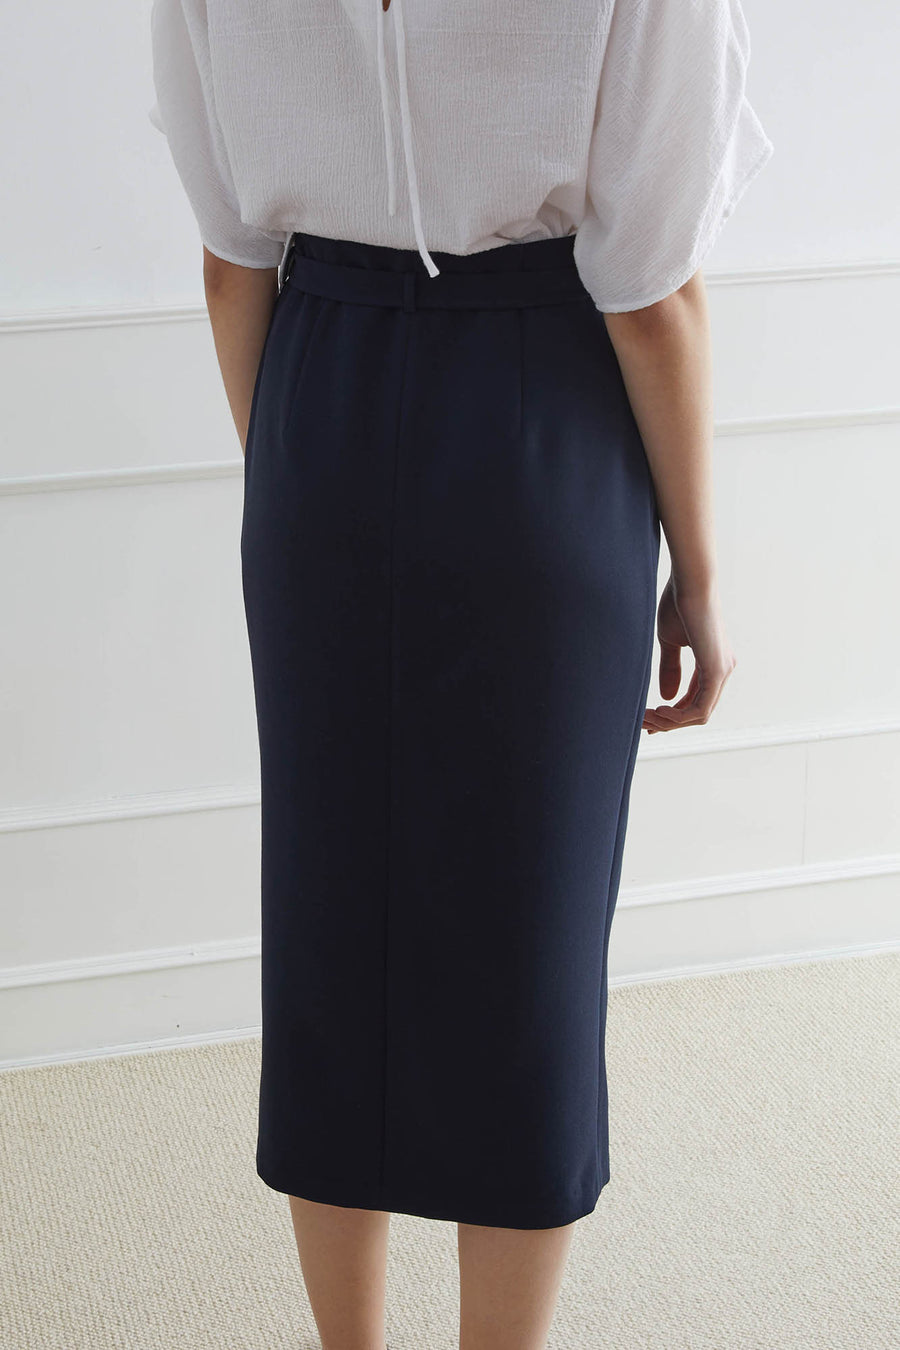 ASPEN Pencil Skirt with Slip-in Belt